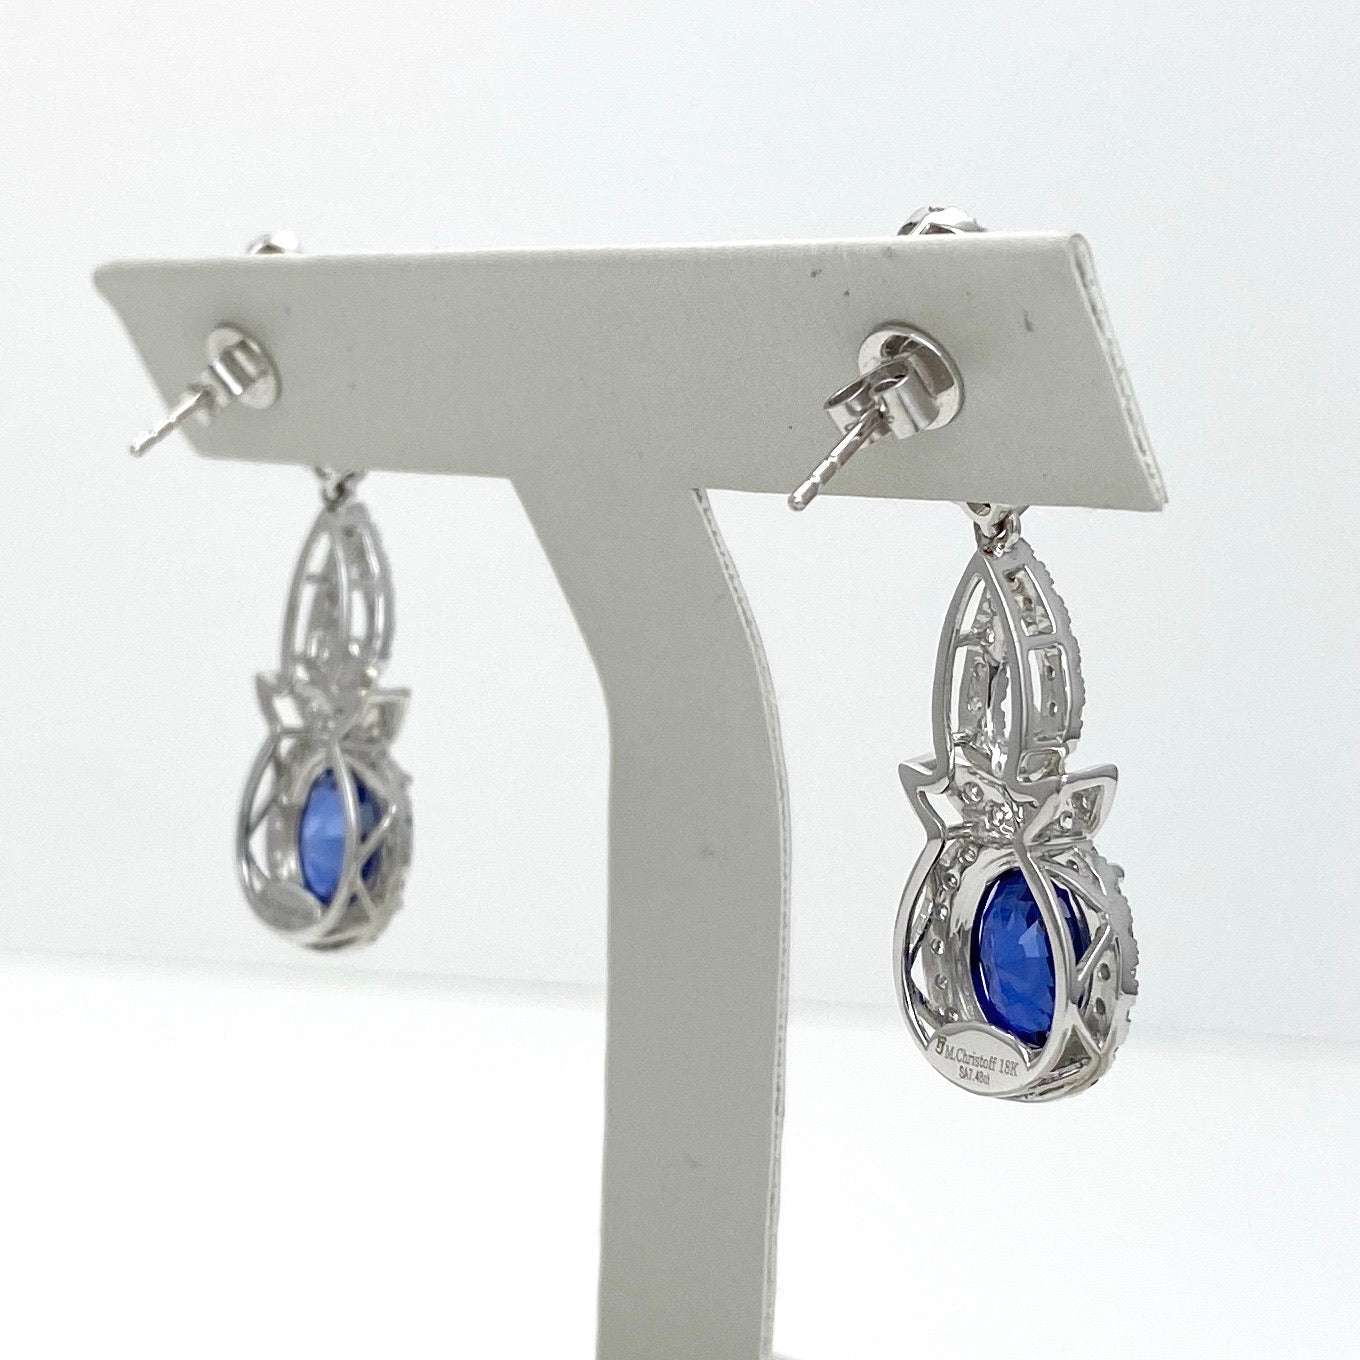 18K White Gold Drop Earrings with Blue Sapphires and Diamonds